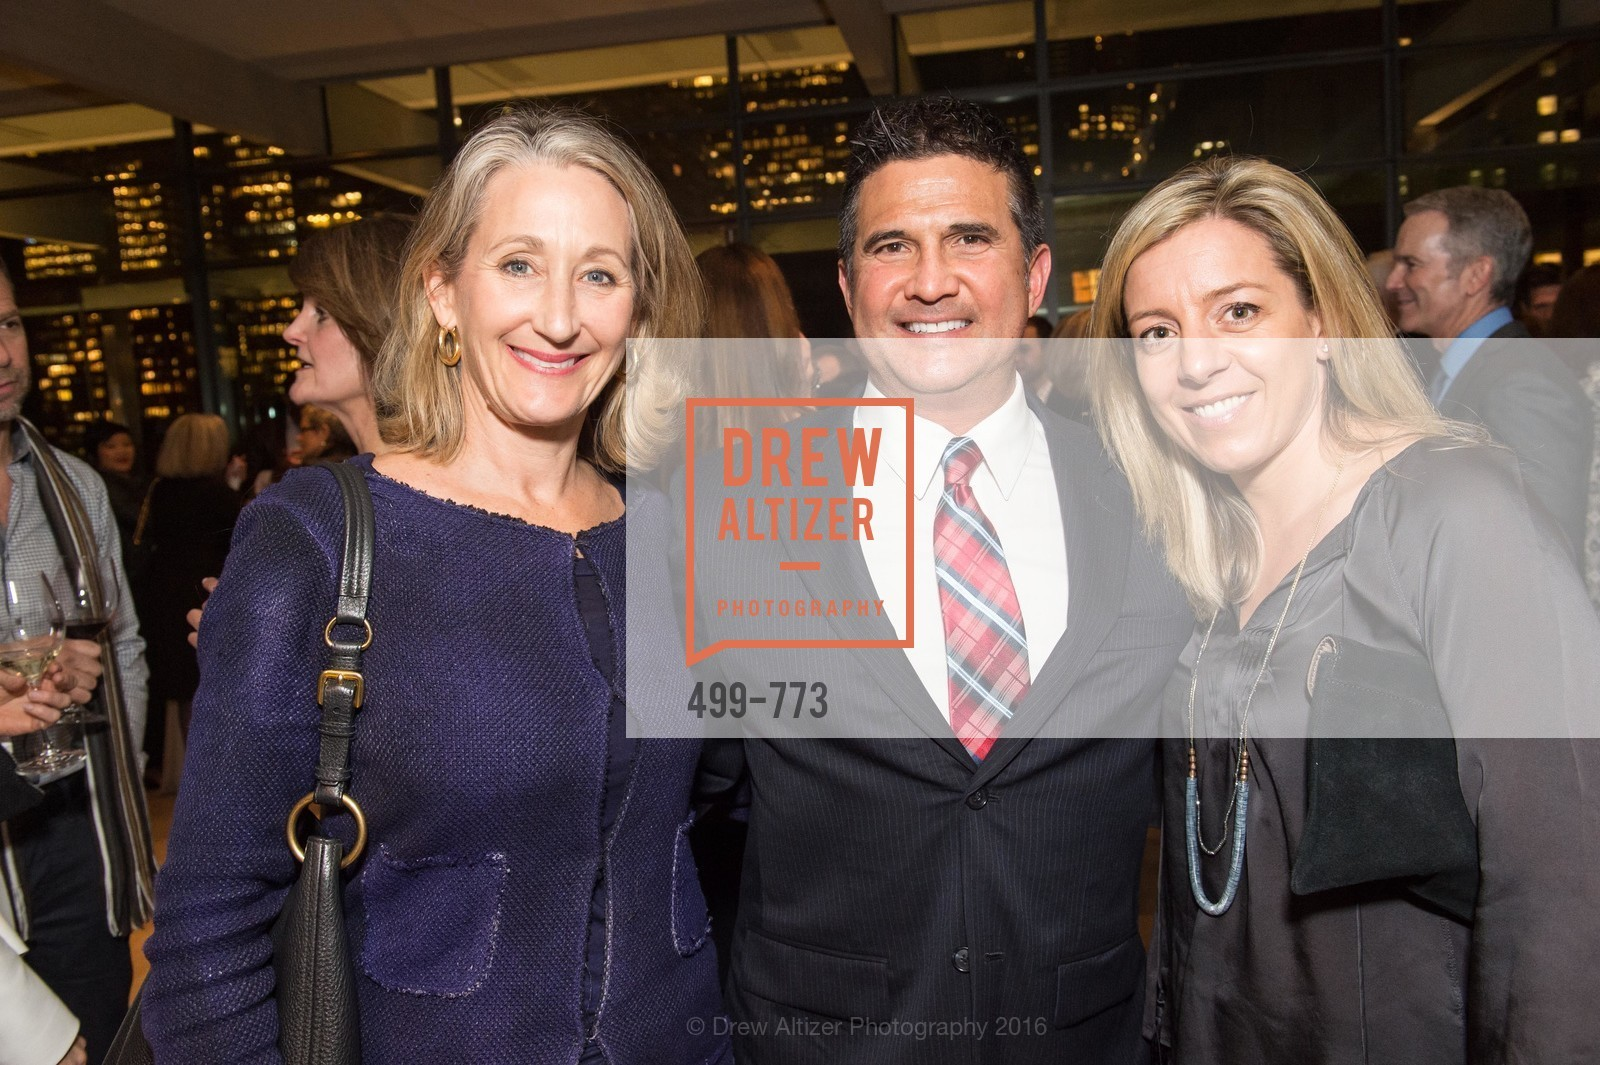 Gael Bruno, Jonathan Soh, Dana Trotter, Sotheby's International Realty's Celebrates the New Year, The Battery, Penthouse. 717 Battery St, January 27th, 2016,Drew Altizer, Drew Altizer Photography, full-service agency, private events, San Francisco photographer, photographer california